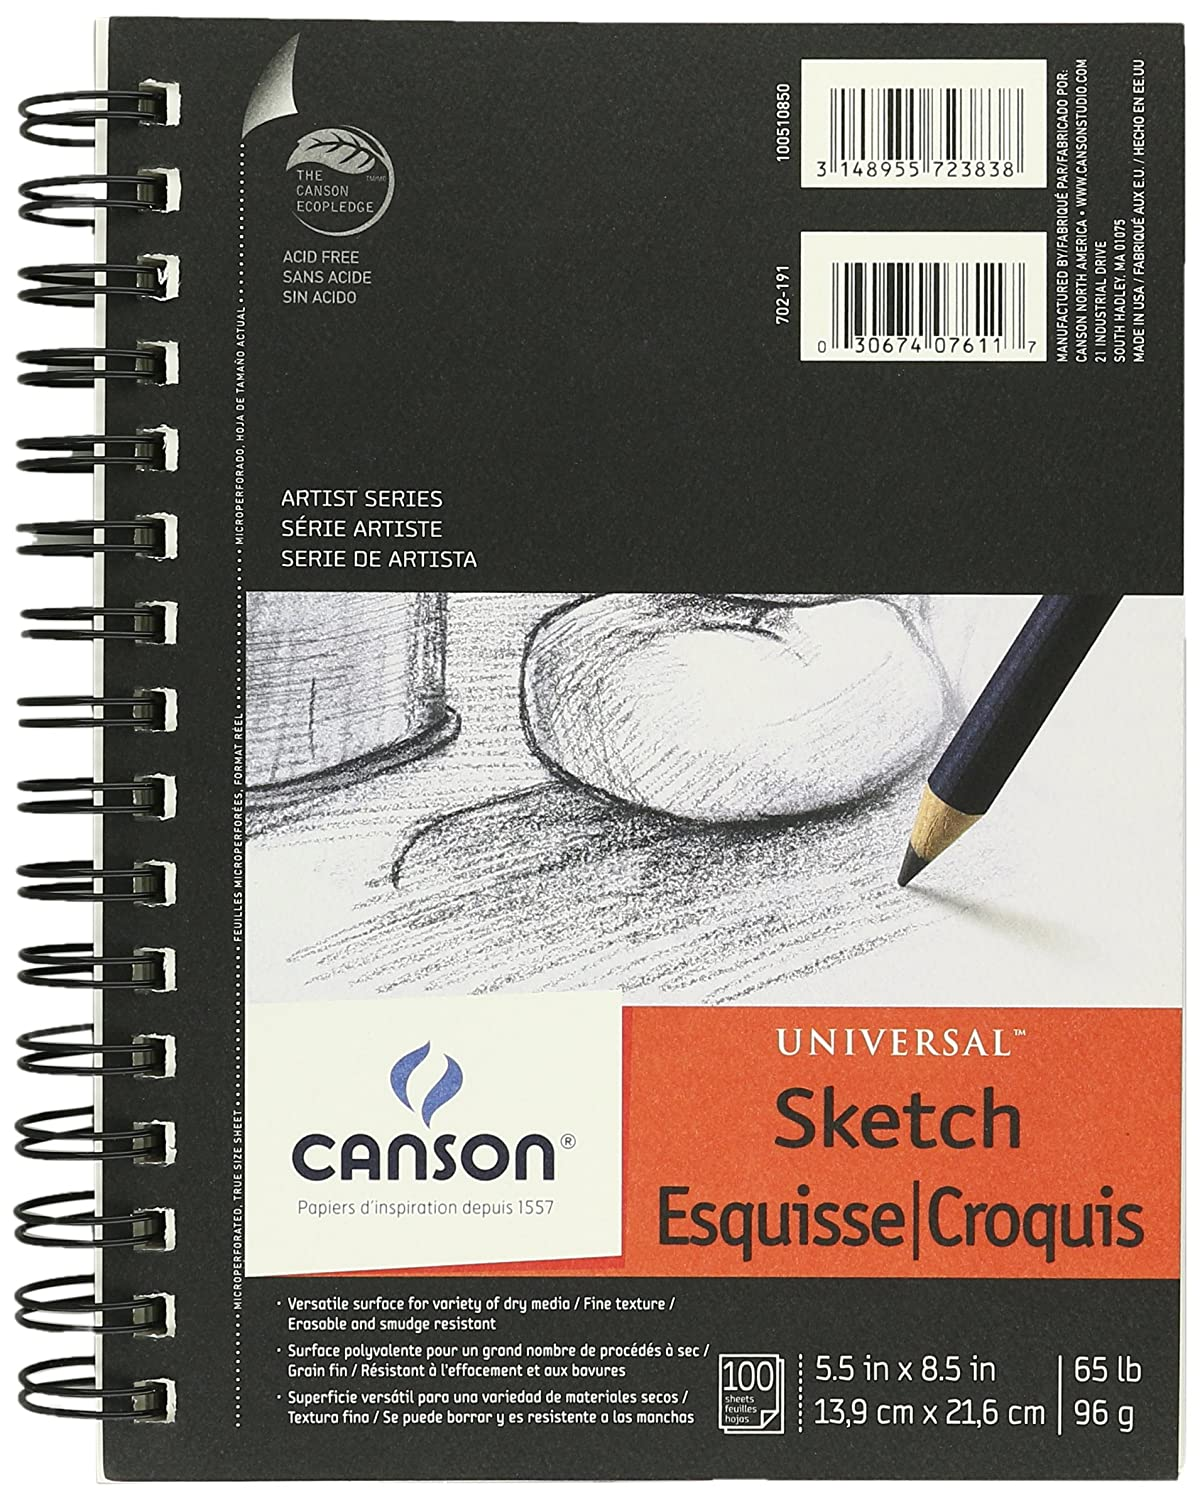 Canson Universal Sketch Pad 5.5X8.5 2 Pack HYATTS HYAB20347-2